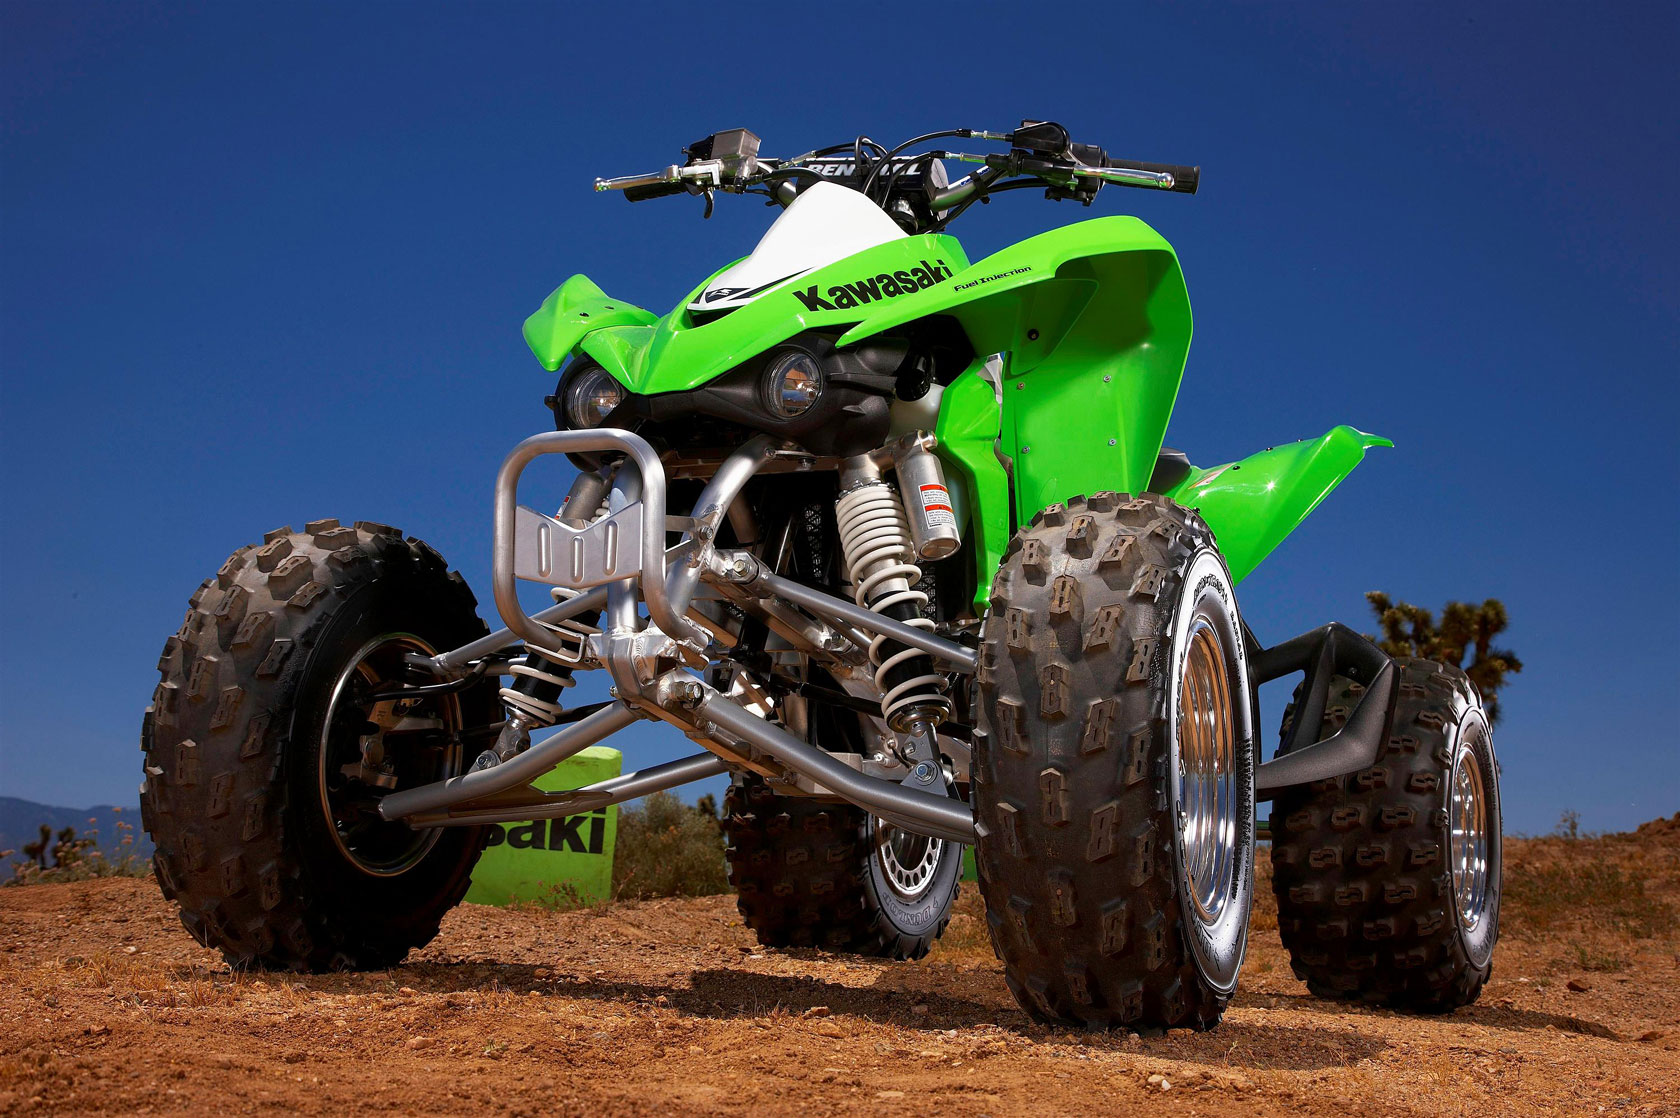 2009 Kawasaki ATV Quad Models